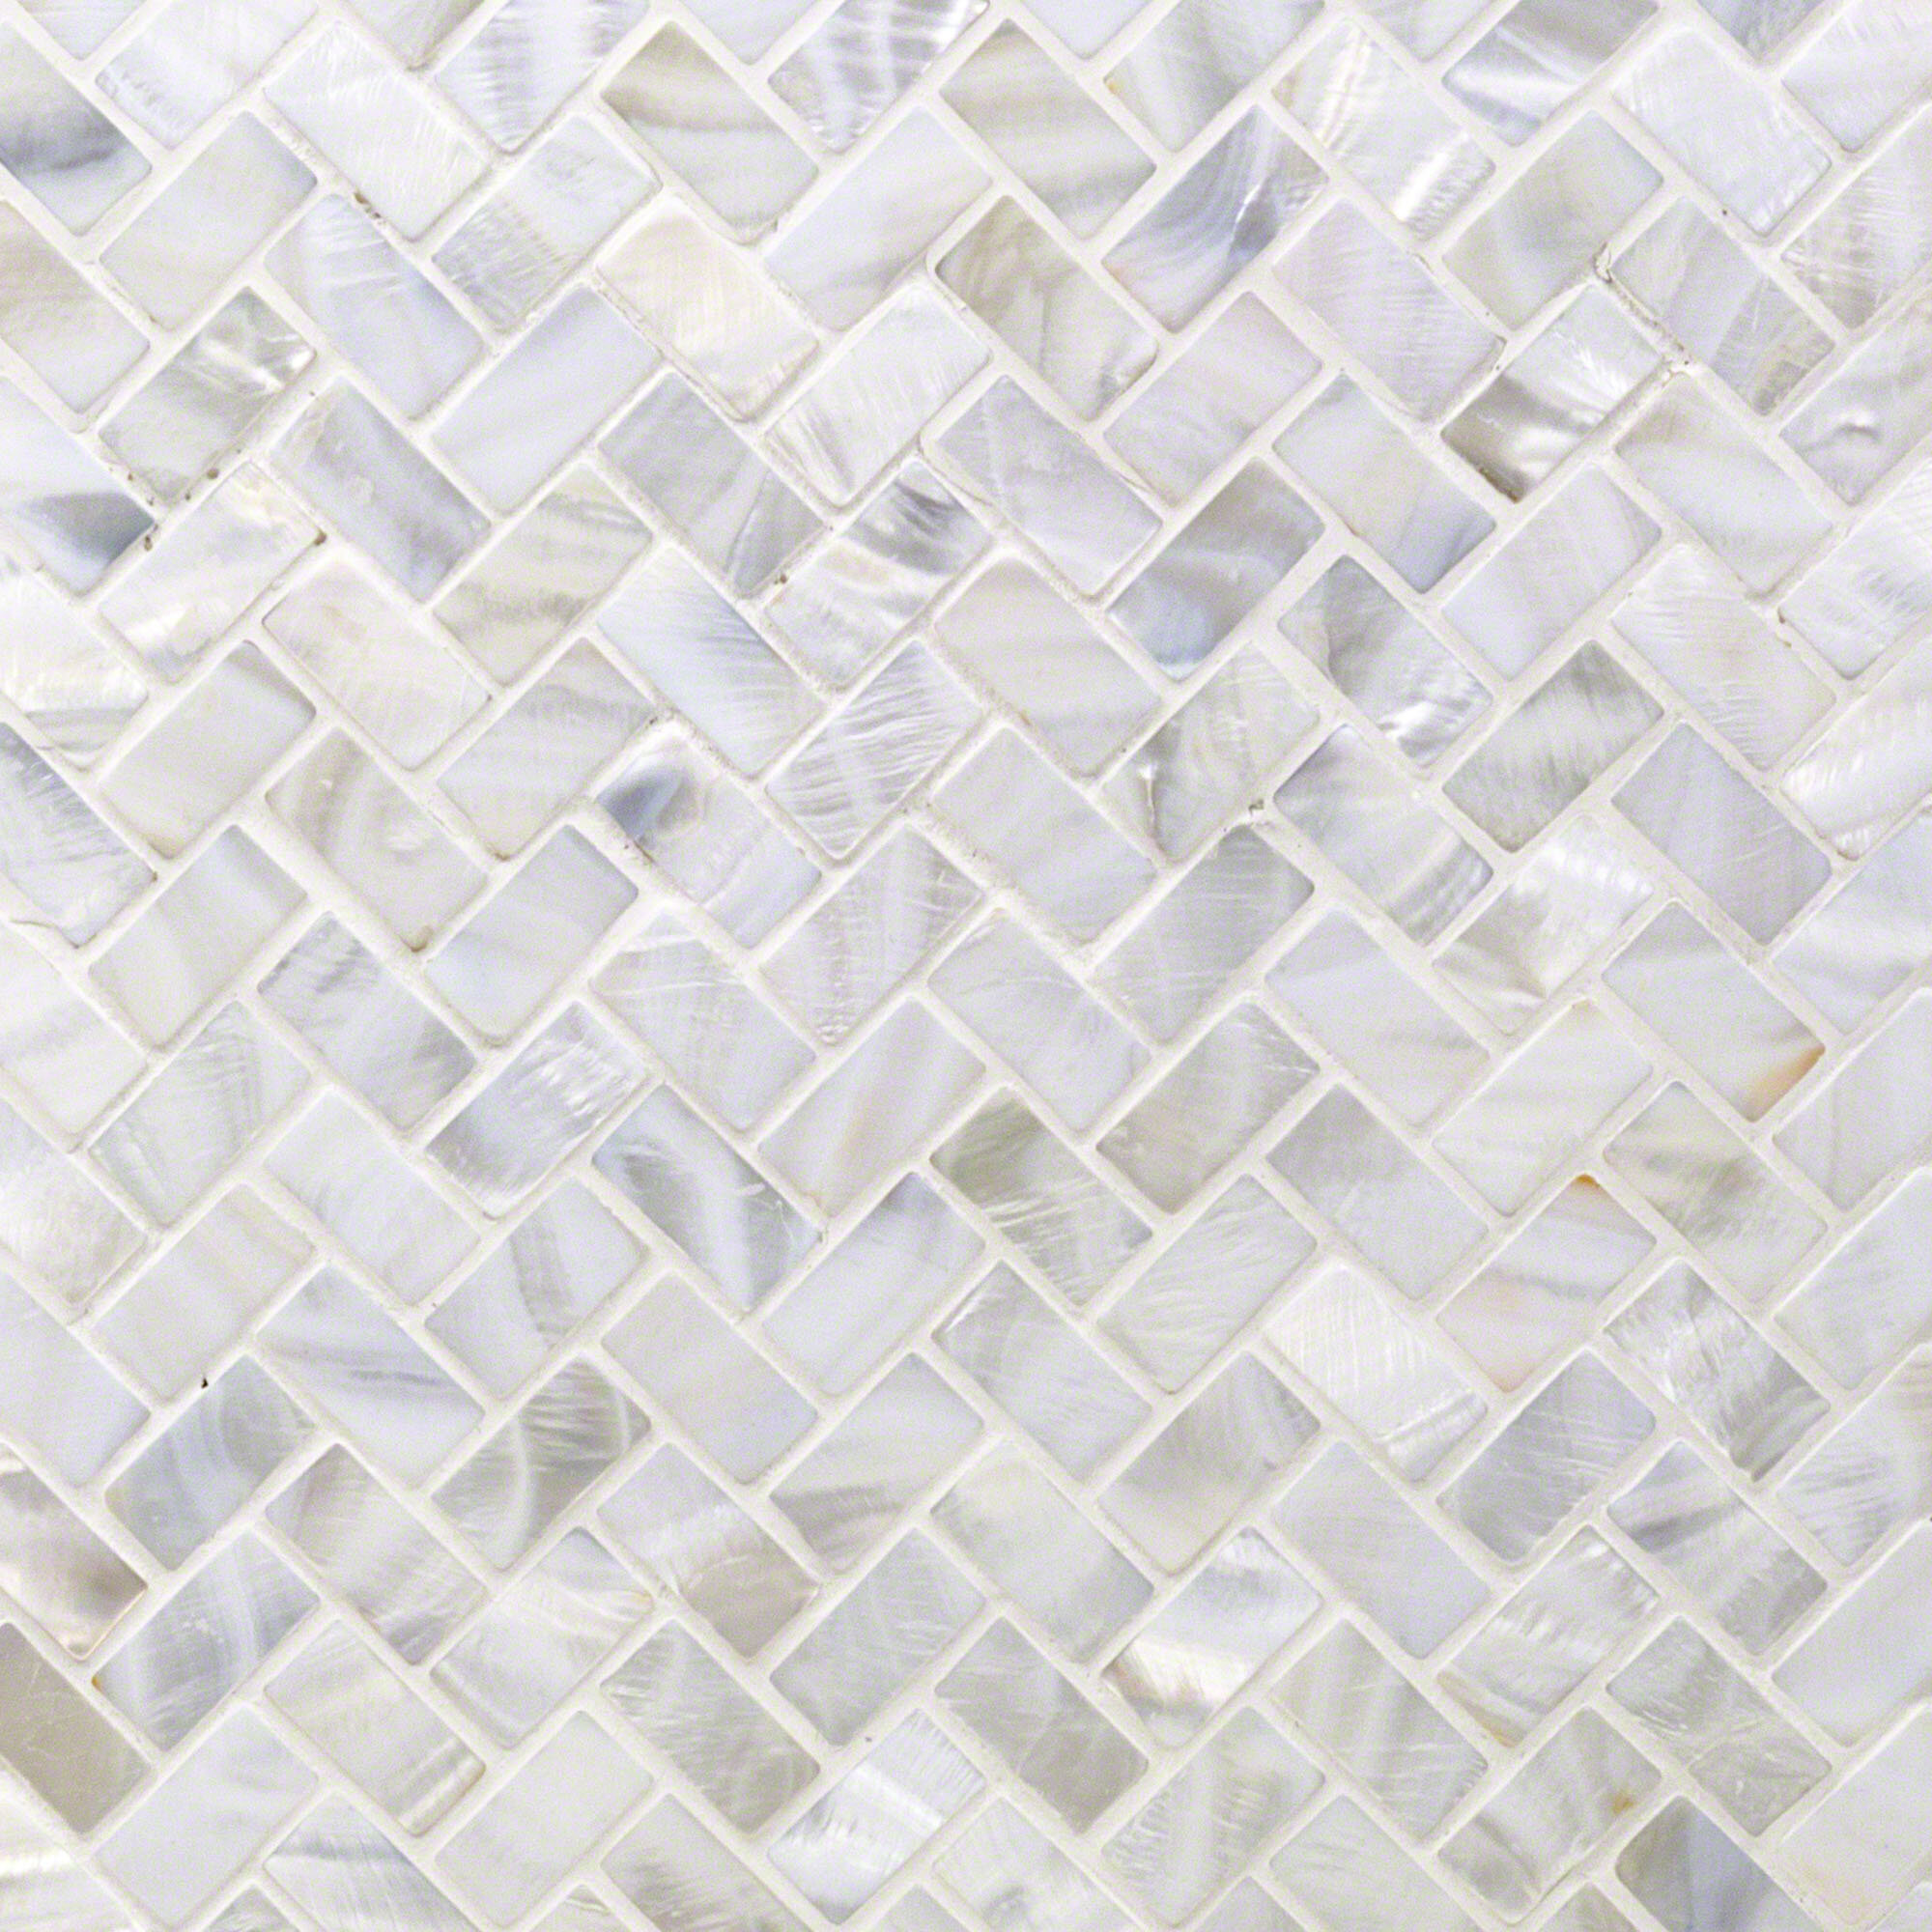 Ivy Hill Tile Pacif Random Sized Glass Pearl Shell Mosaic Tile In Polished White Pearl Reviews Wayfair